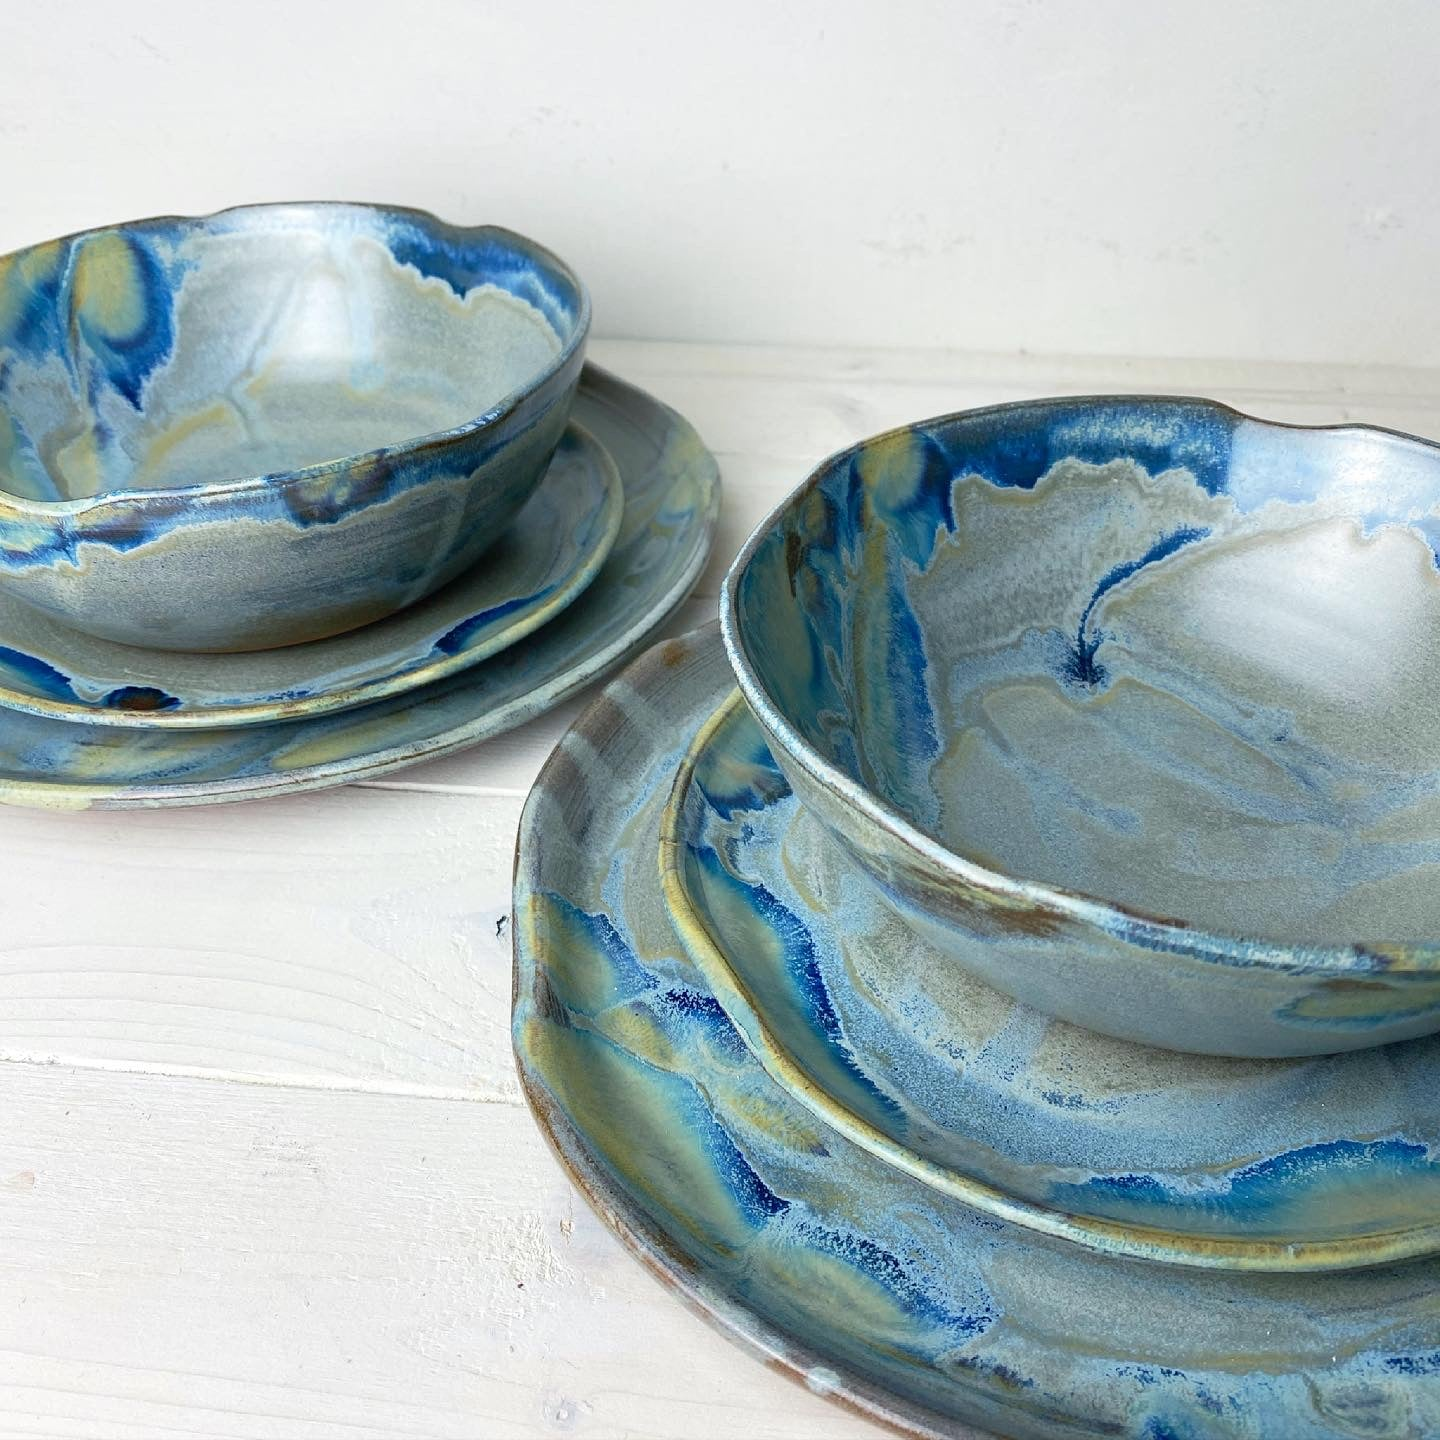 Dinnerware Set (6 piece: 2 bowls, 2 plates, 2 side plates): Fool For Love